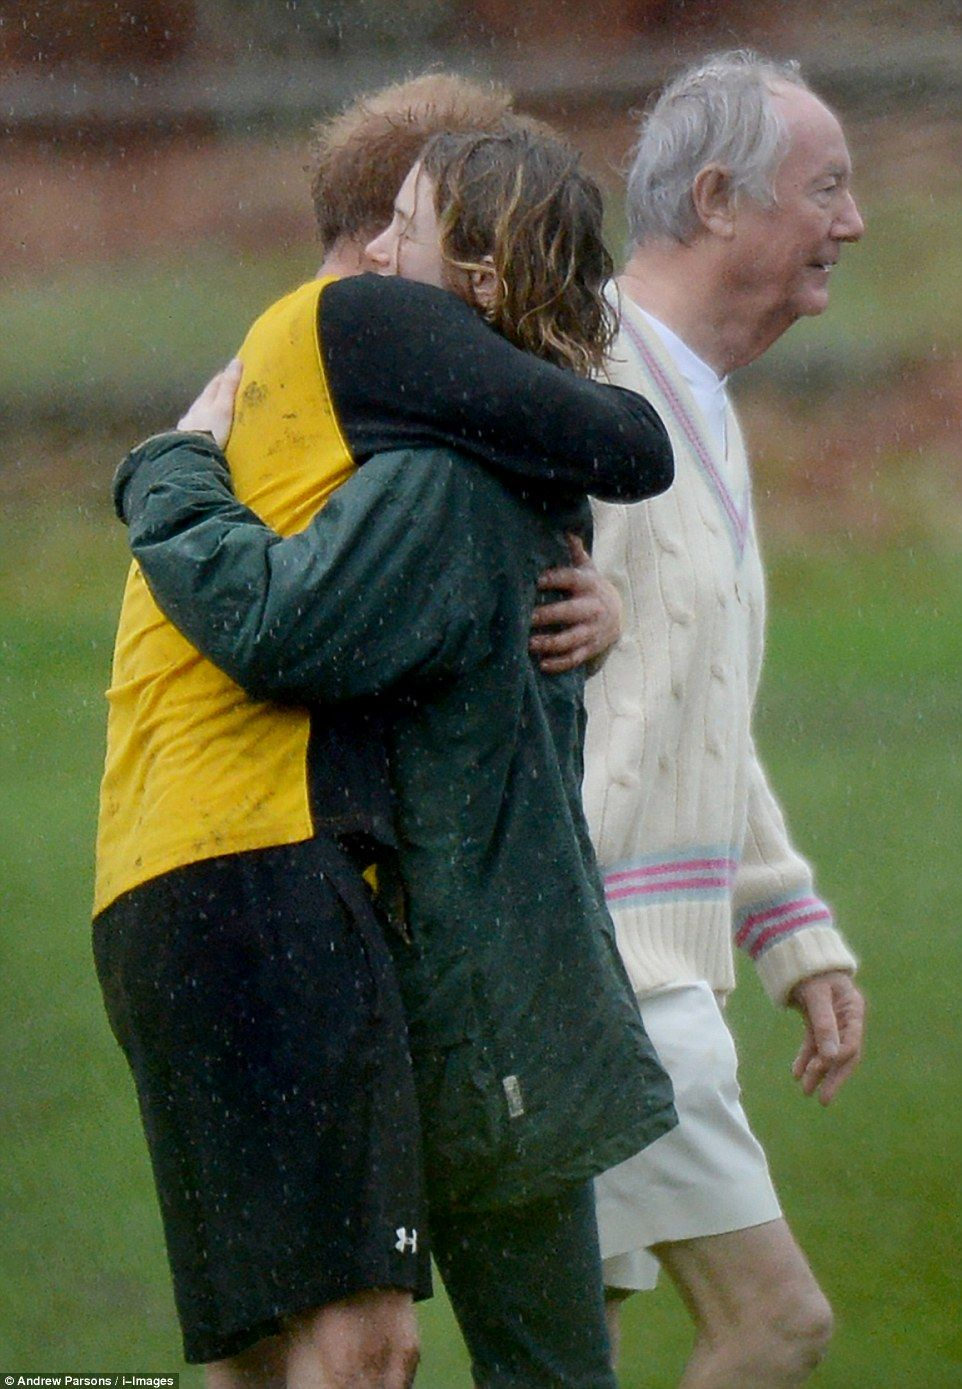 Harry hugs a young girl who had been watching the match who doesn't seem to mind his muddy shirt